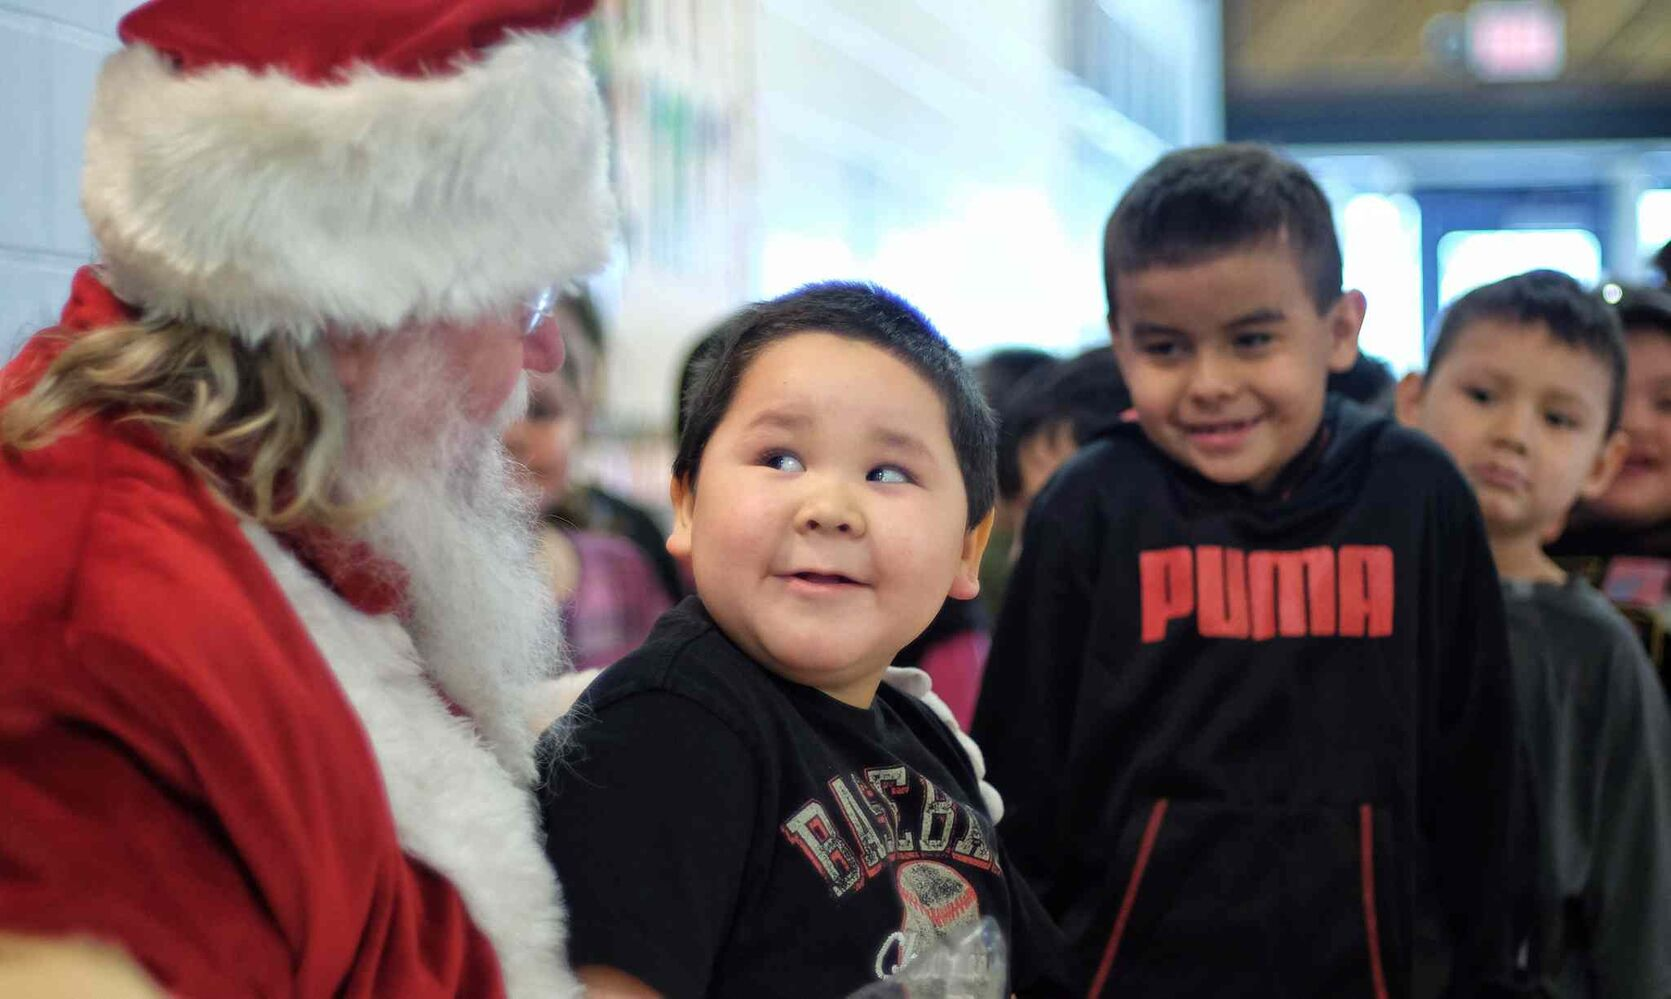 Jacoby Smith, 5, gives Santa a look as he talks to him during Santa's visit to Wanipigow School on the Hollow Water First Nation Wednesday.